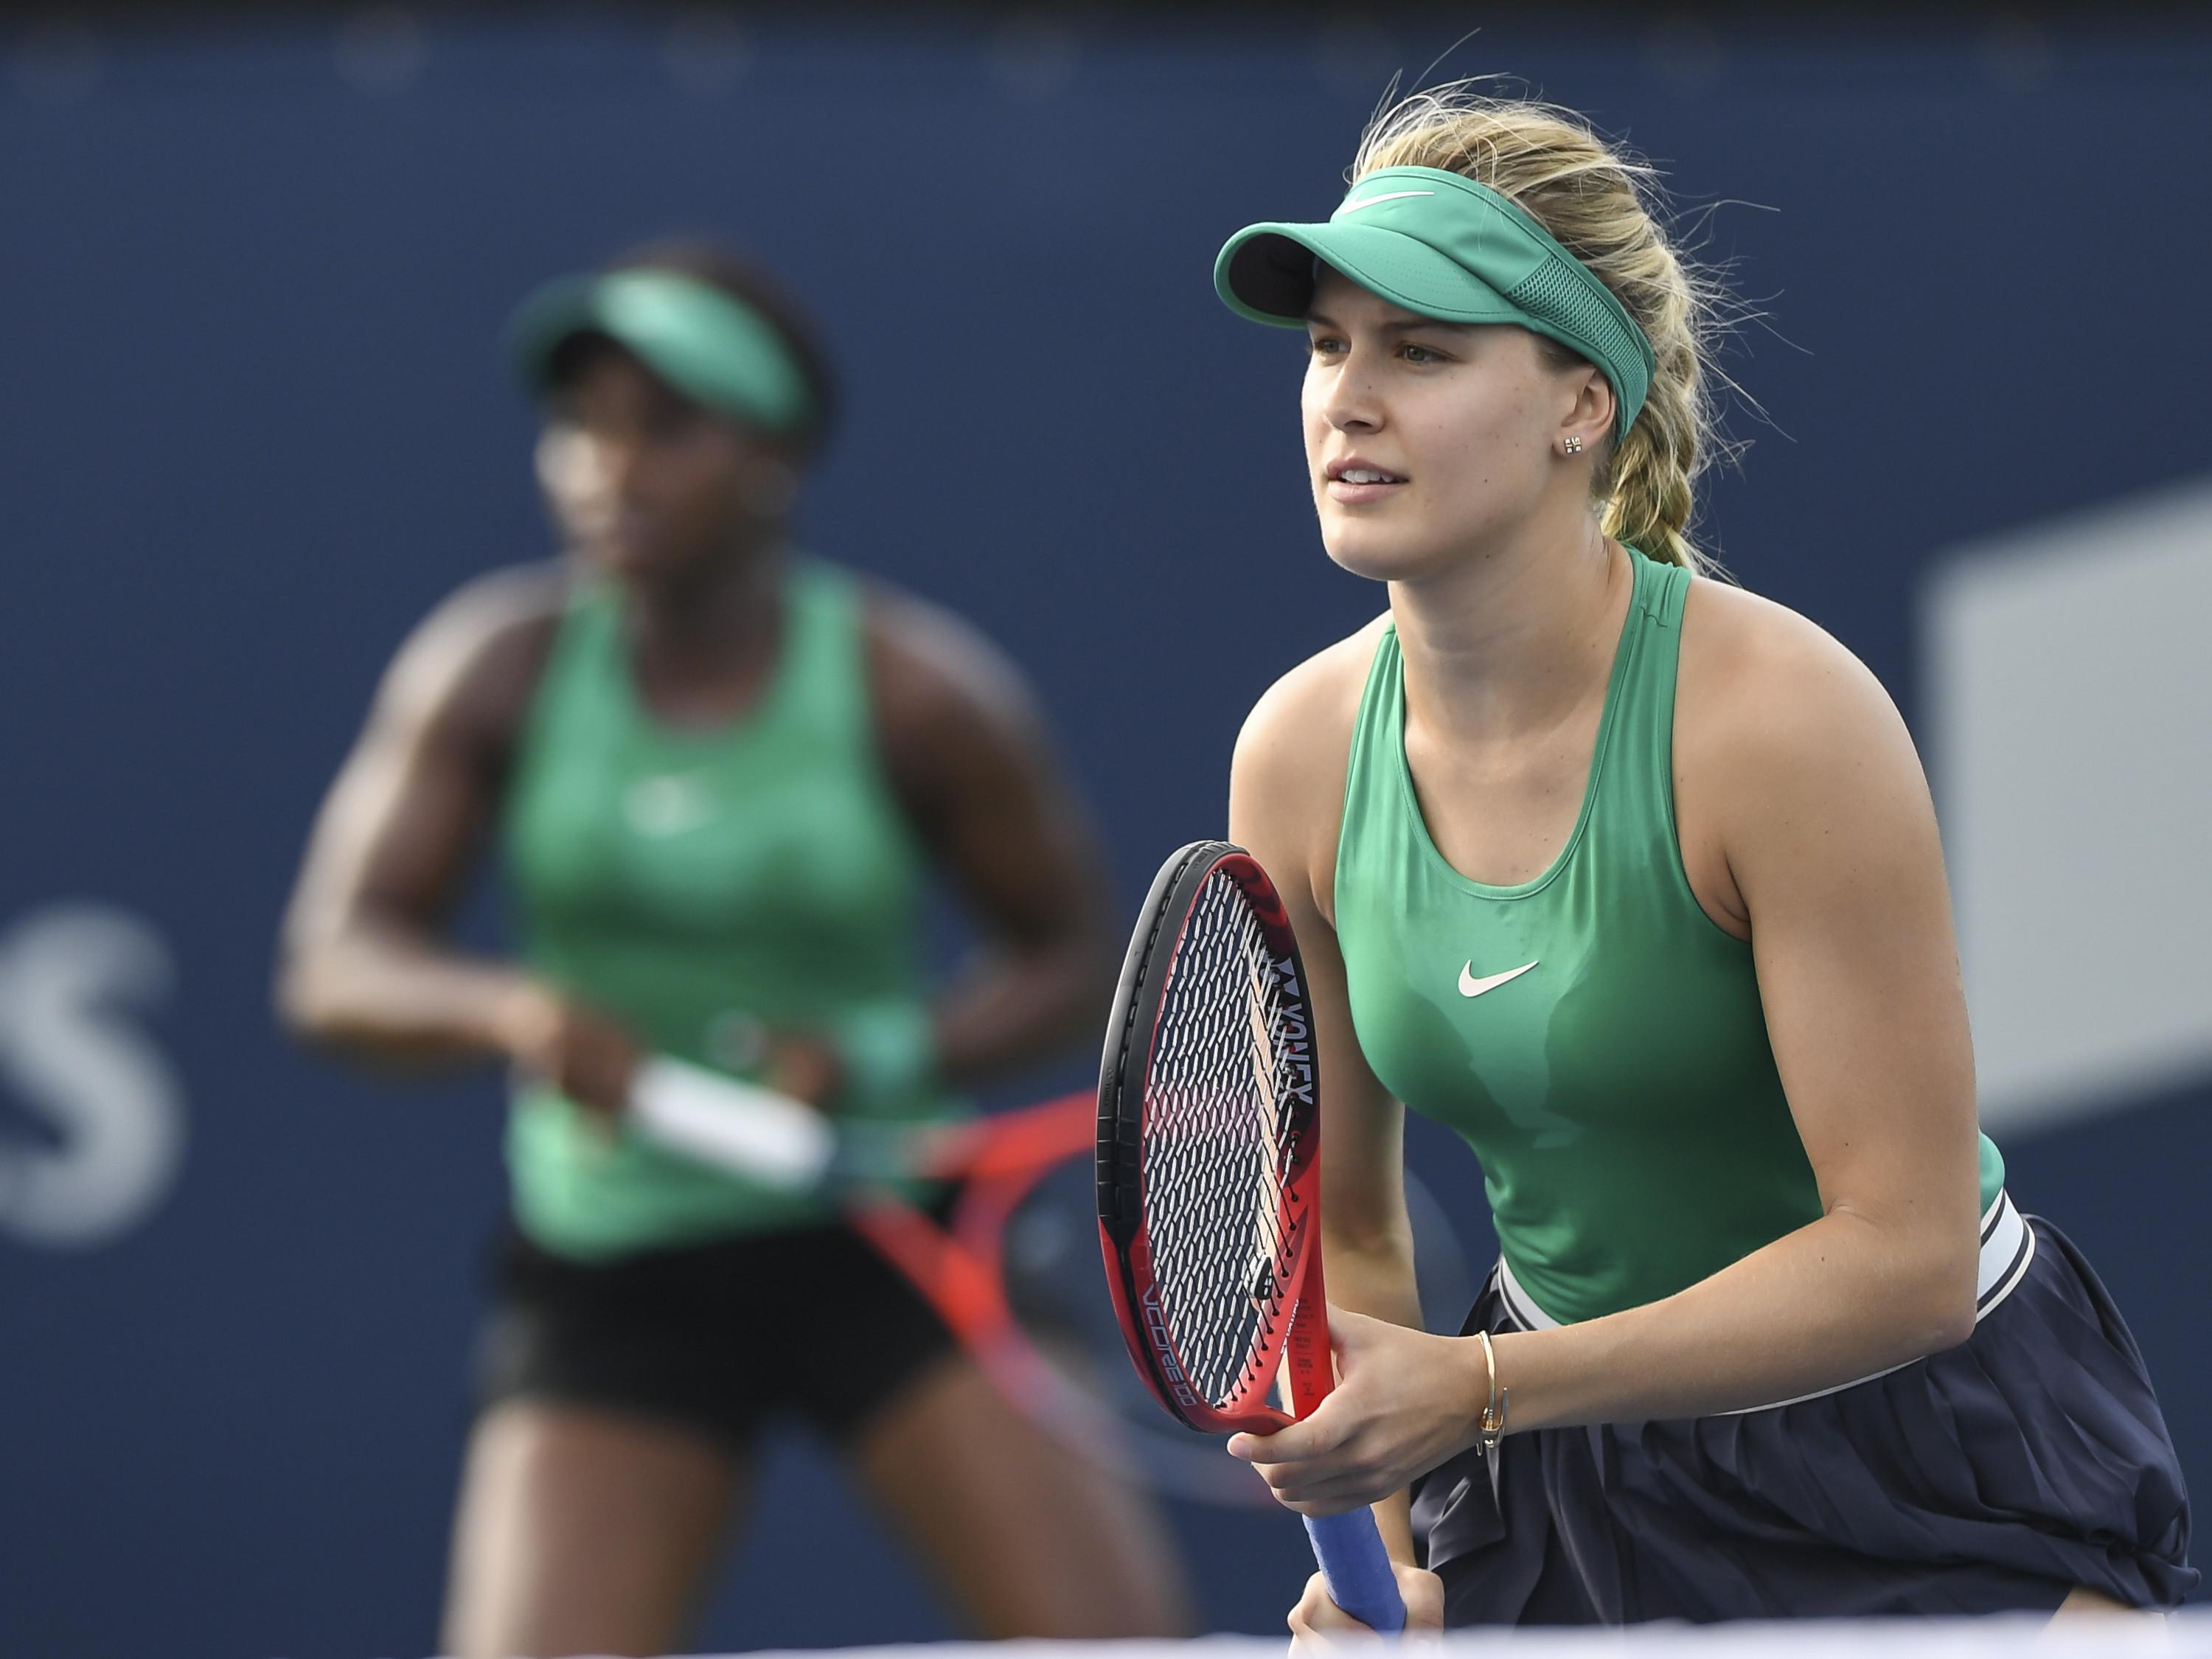 Eugenie Bouchard is now into the quarter-finals of the Vancouver Open